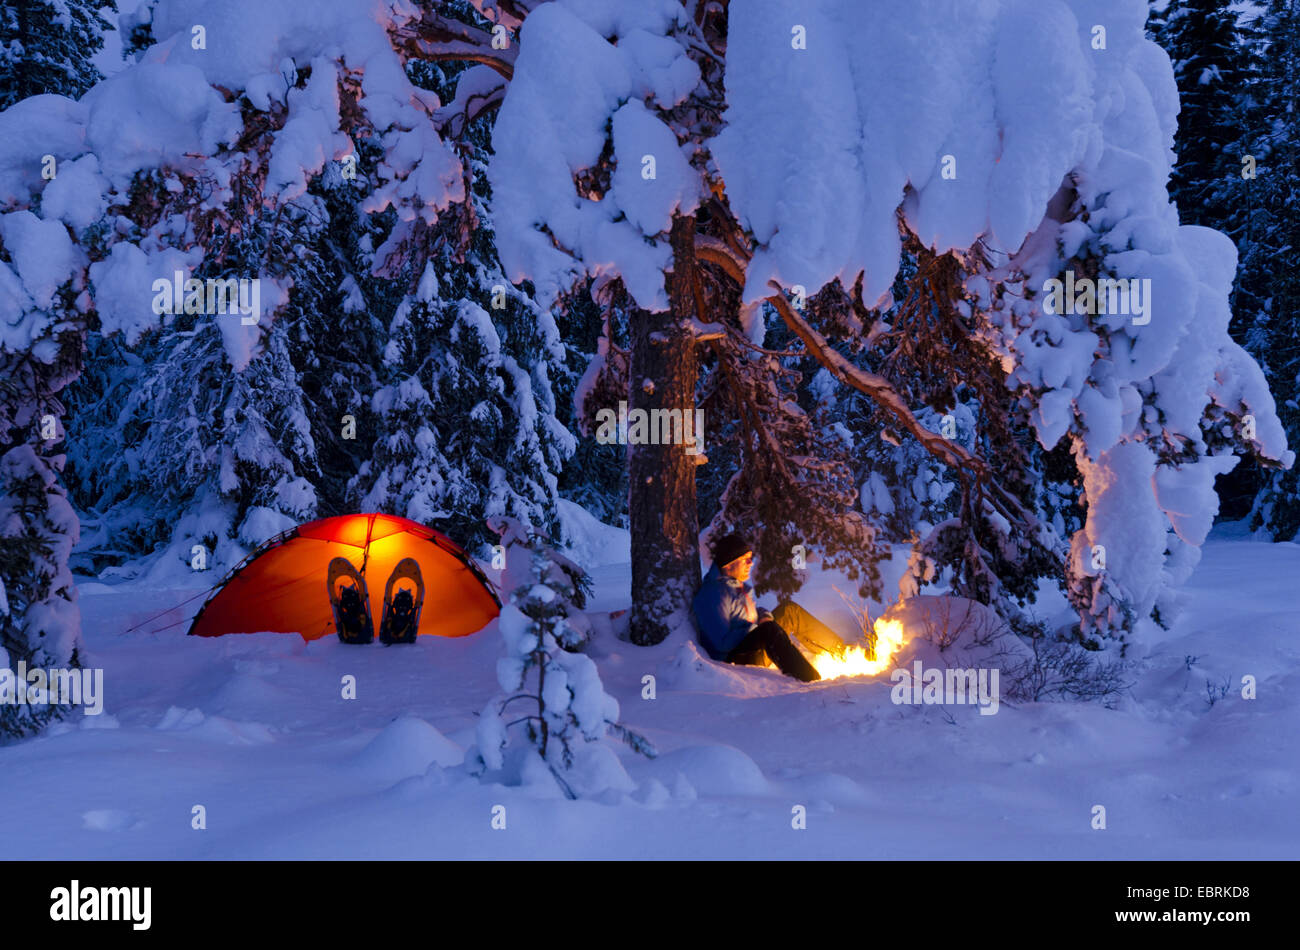 man in snowy landscape sitting at campfire under coniferous tree next to illuminated tent, Norway, Hedmark Fylke, - Stock Image